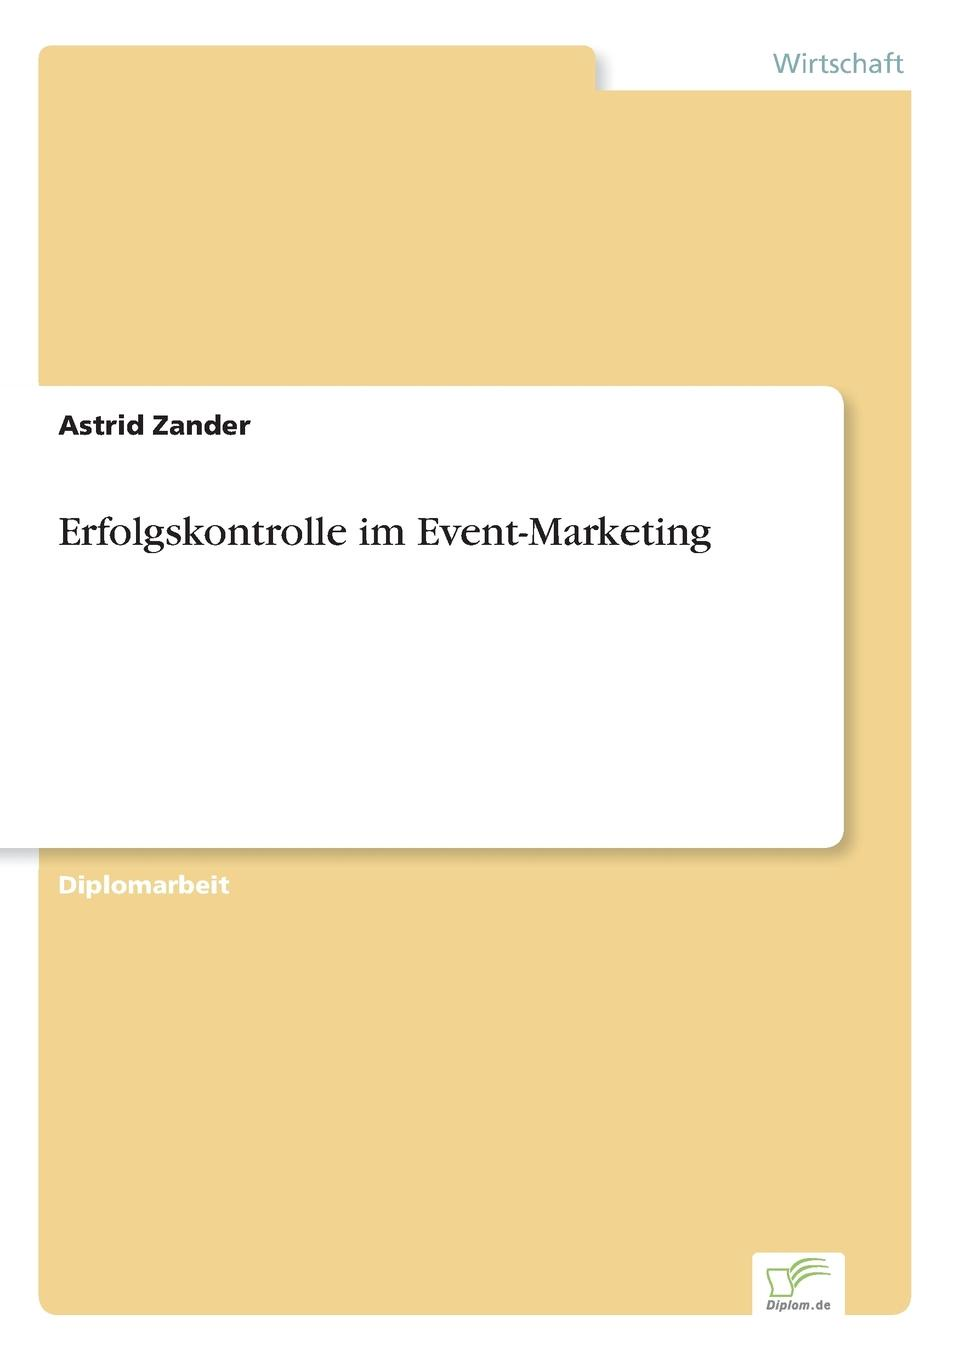 Astrid Zander Erfolgskontrolle im Event-Marketing event